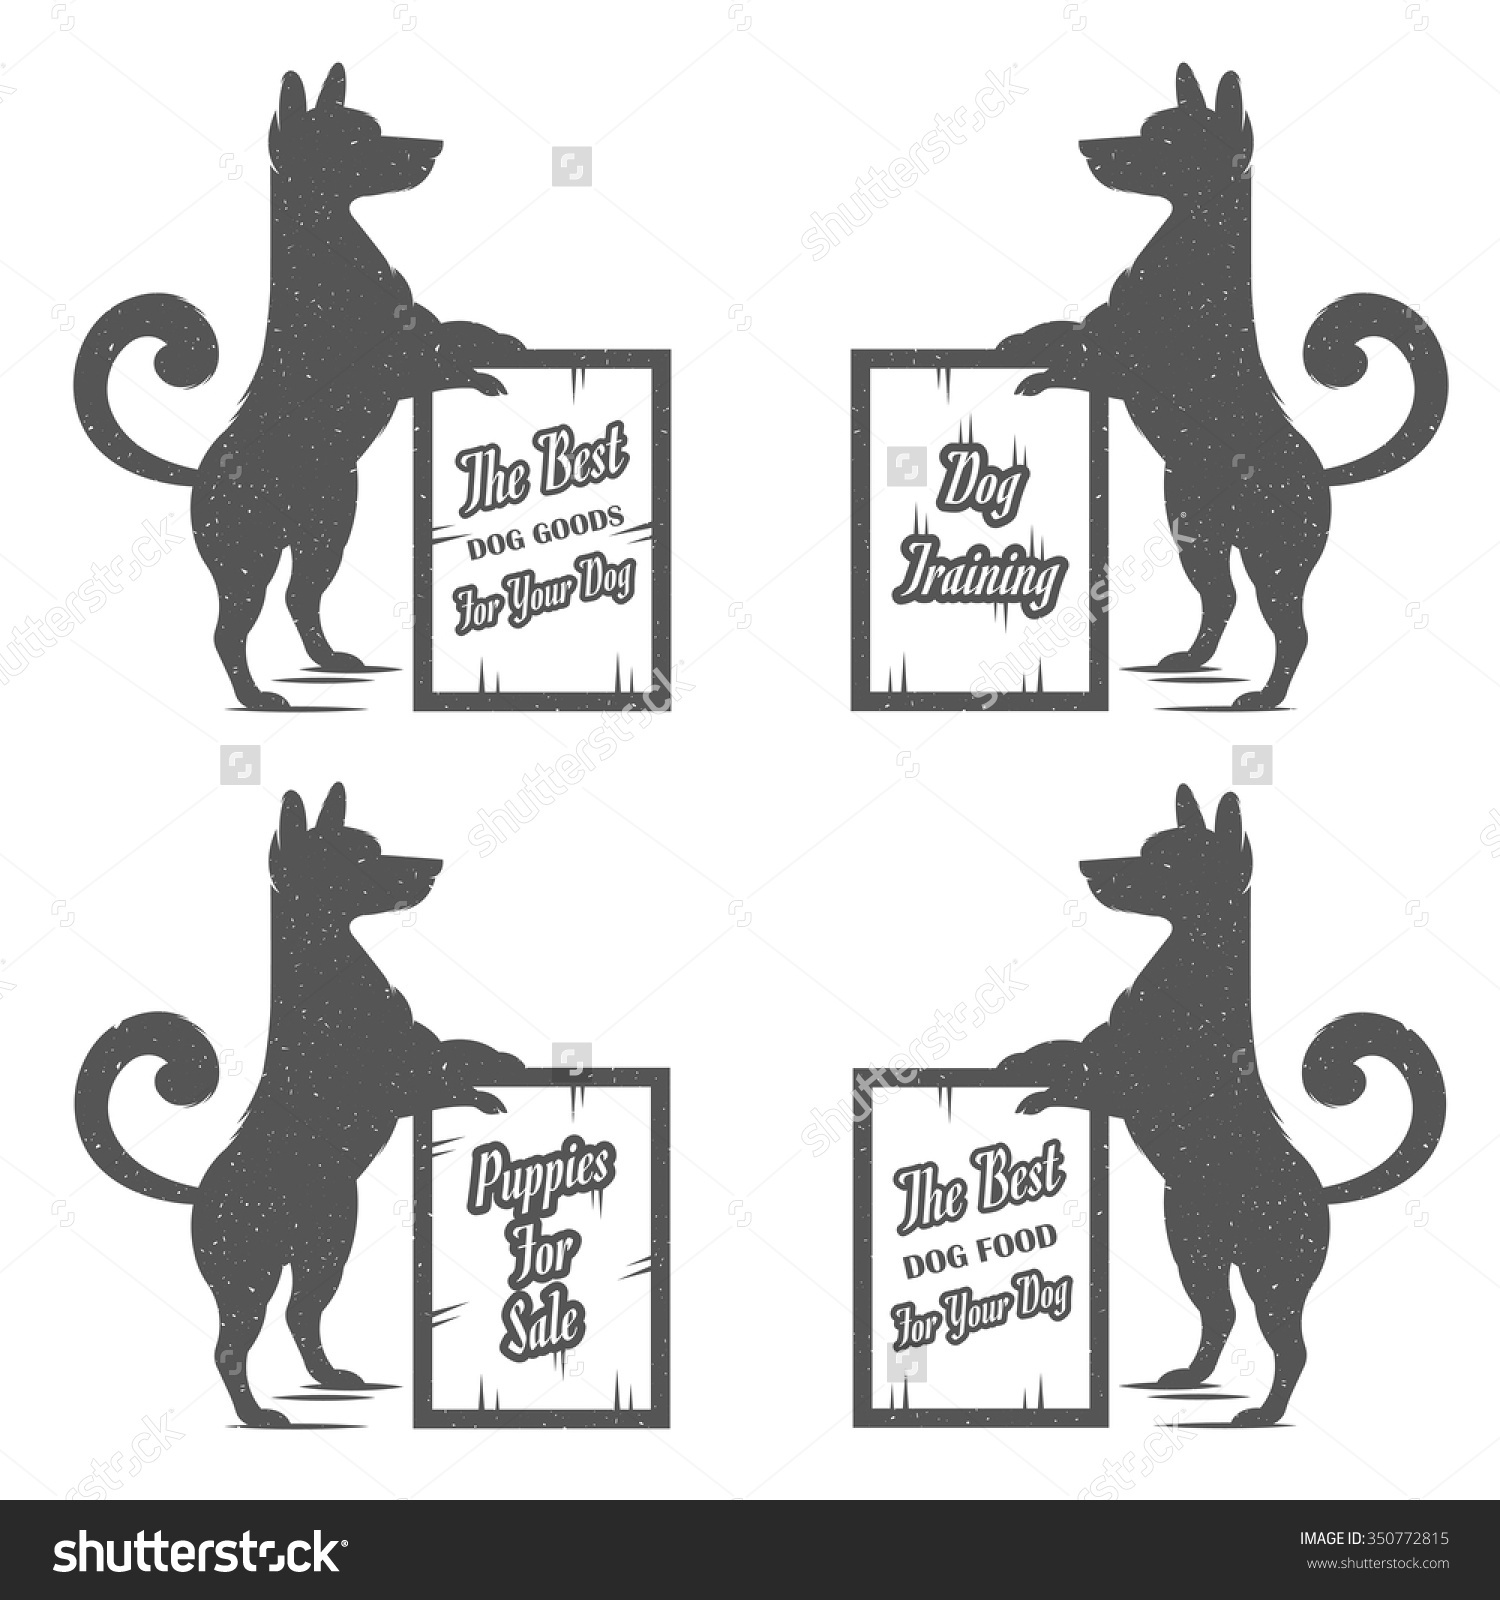 Vintage Illustration Fun Dog With Grunge Effect For Posters And T.